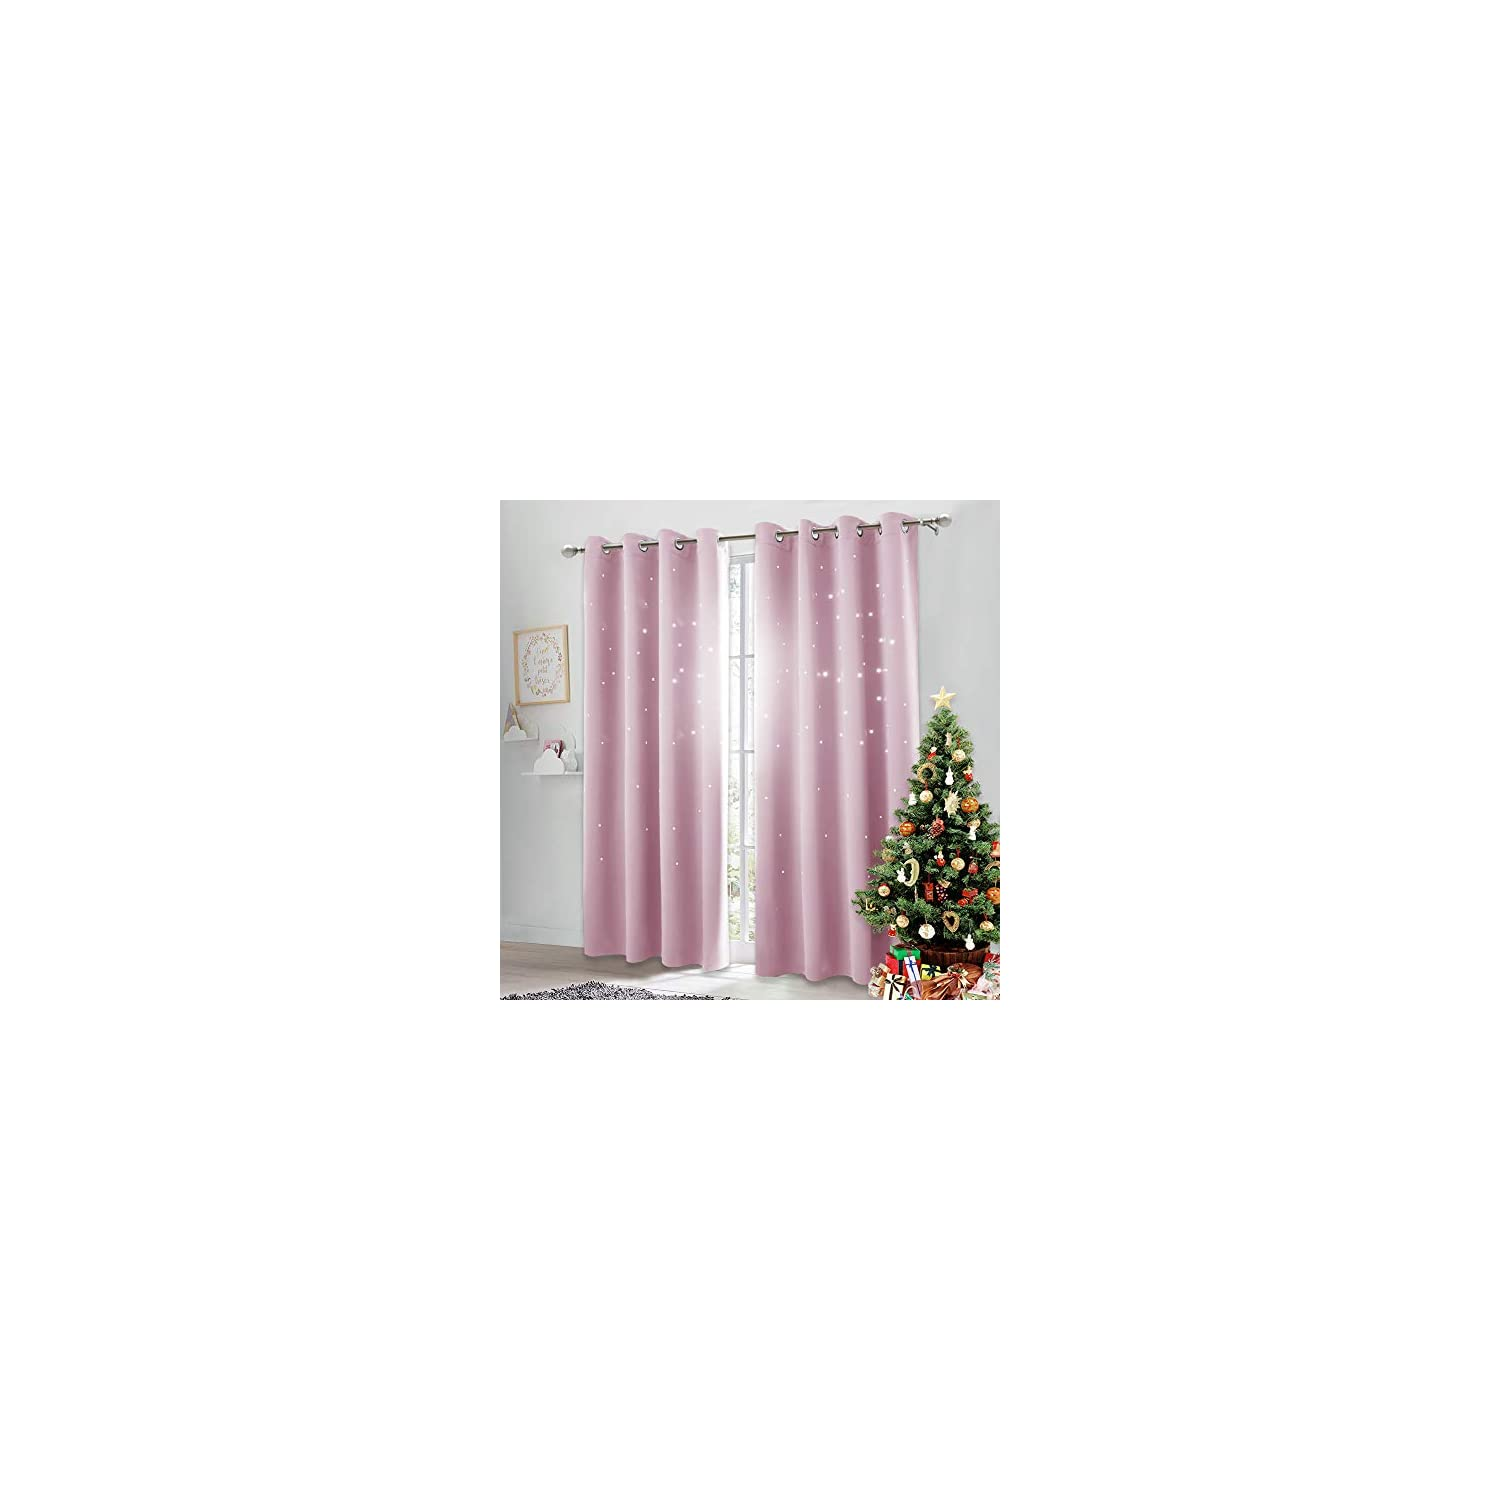 NICETOWN Star Cut Out Curtains – Die-Cut Star Blackout Drapes Window Treatment Draperies for Space Theme Bedroom (Lavender Pink=Baby Pink, 2 Panels, 52 inches x 84 inches)